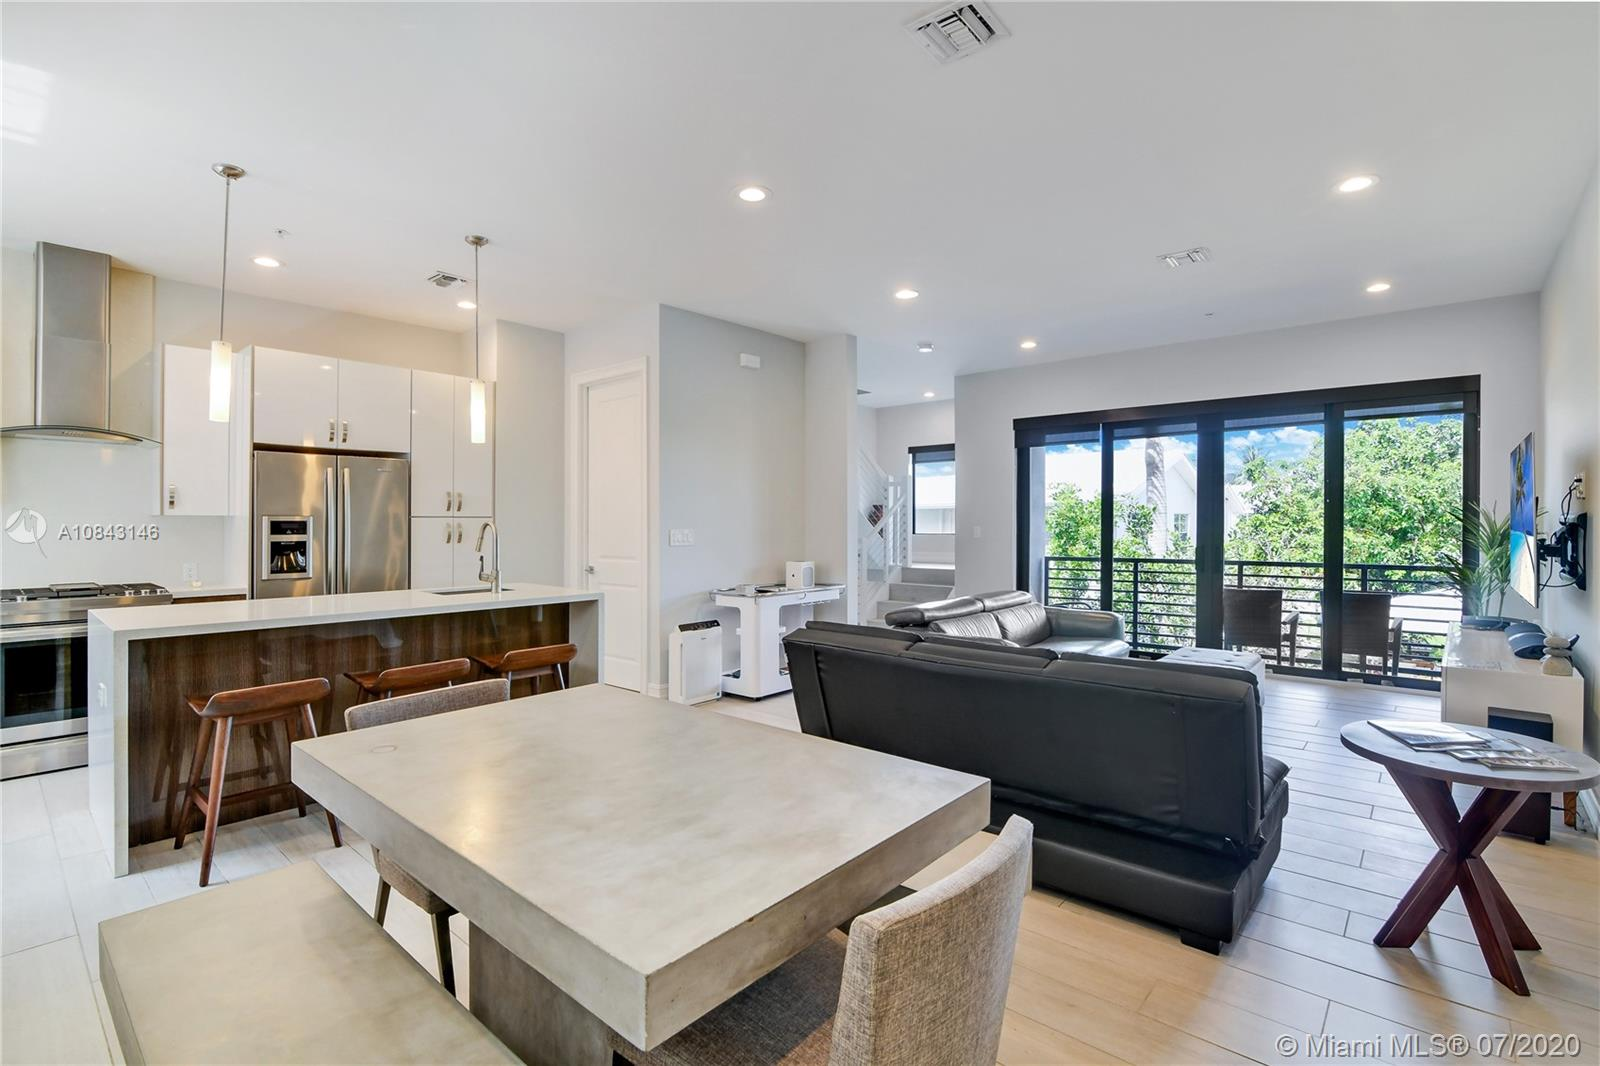 Excellent 3 story smart home! This 2018 constructed townhome features 3.5 bathrooms, 3 bedrooms within 1,916 sq ft. Interior includes custom laminated lacquer cabinetry, high-end Jenn-Aire appliances, quartz tops in kitchen and bathroom, plus tile flooring throughout the home. There is also a double garage, Kevo keyless entry system and private fenced yard with balcony.  Smart home has wireless light switches, Wifi controlled garage door and Ecobee smart thermostat.